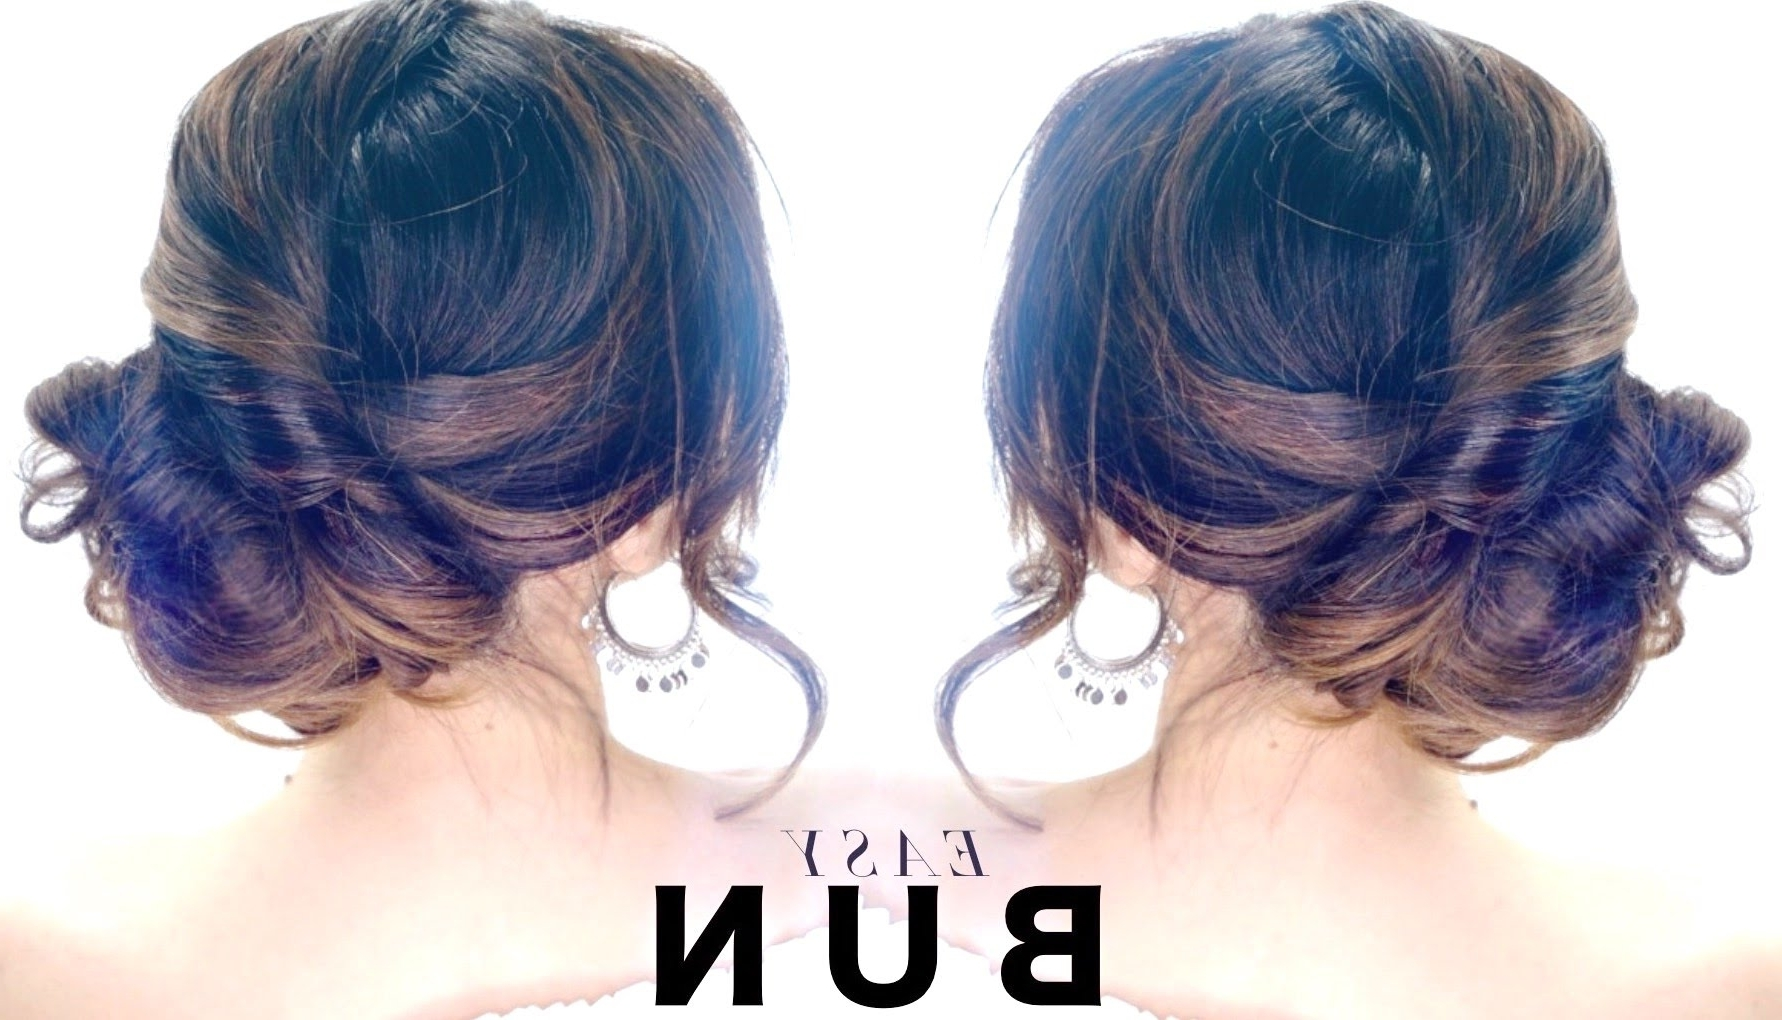 3 Minute Elegant Side Bun Hairstyle ☆ Easy Summer Updo Hairstyles For Newest Wedding Hairstyles For Long Hair With Side Bun (View 8 of 15)